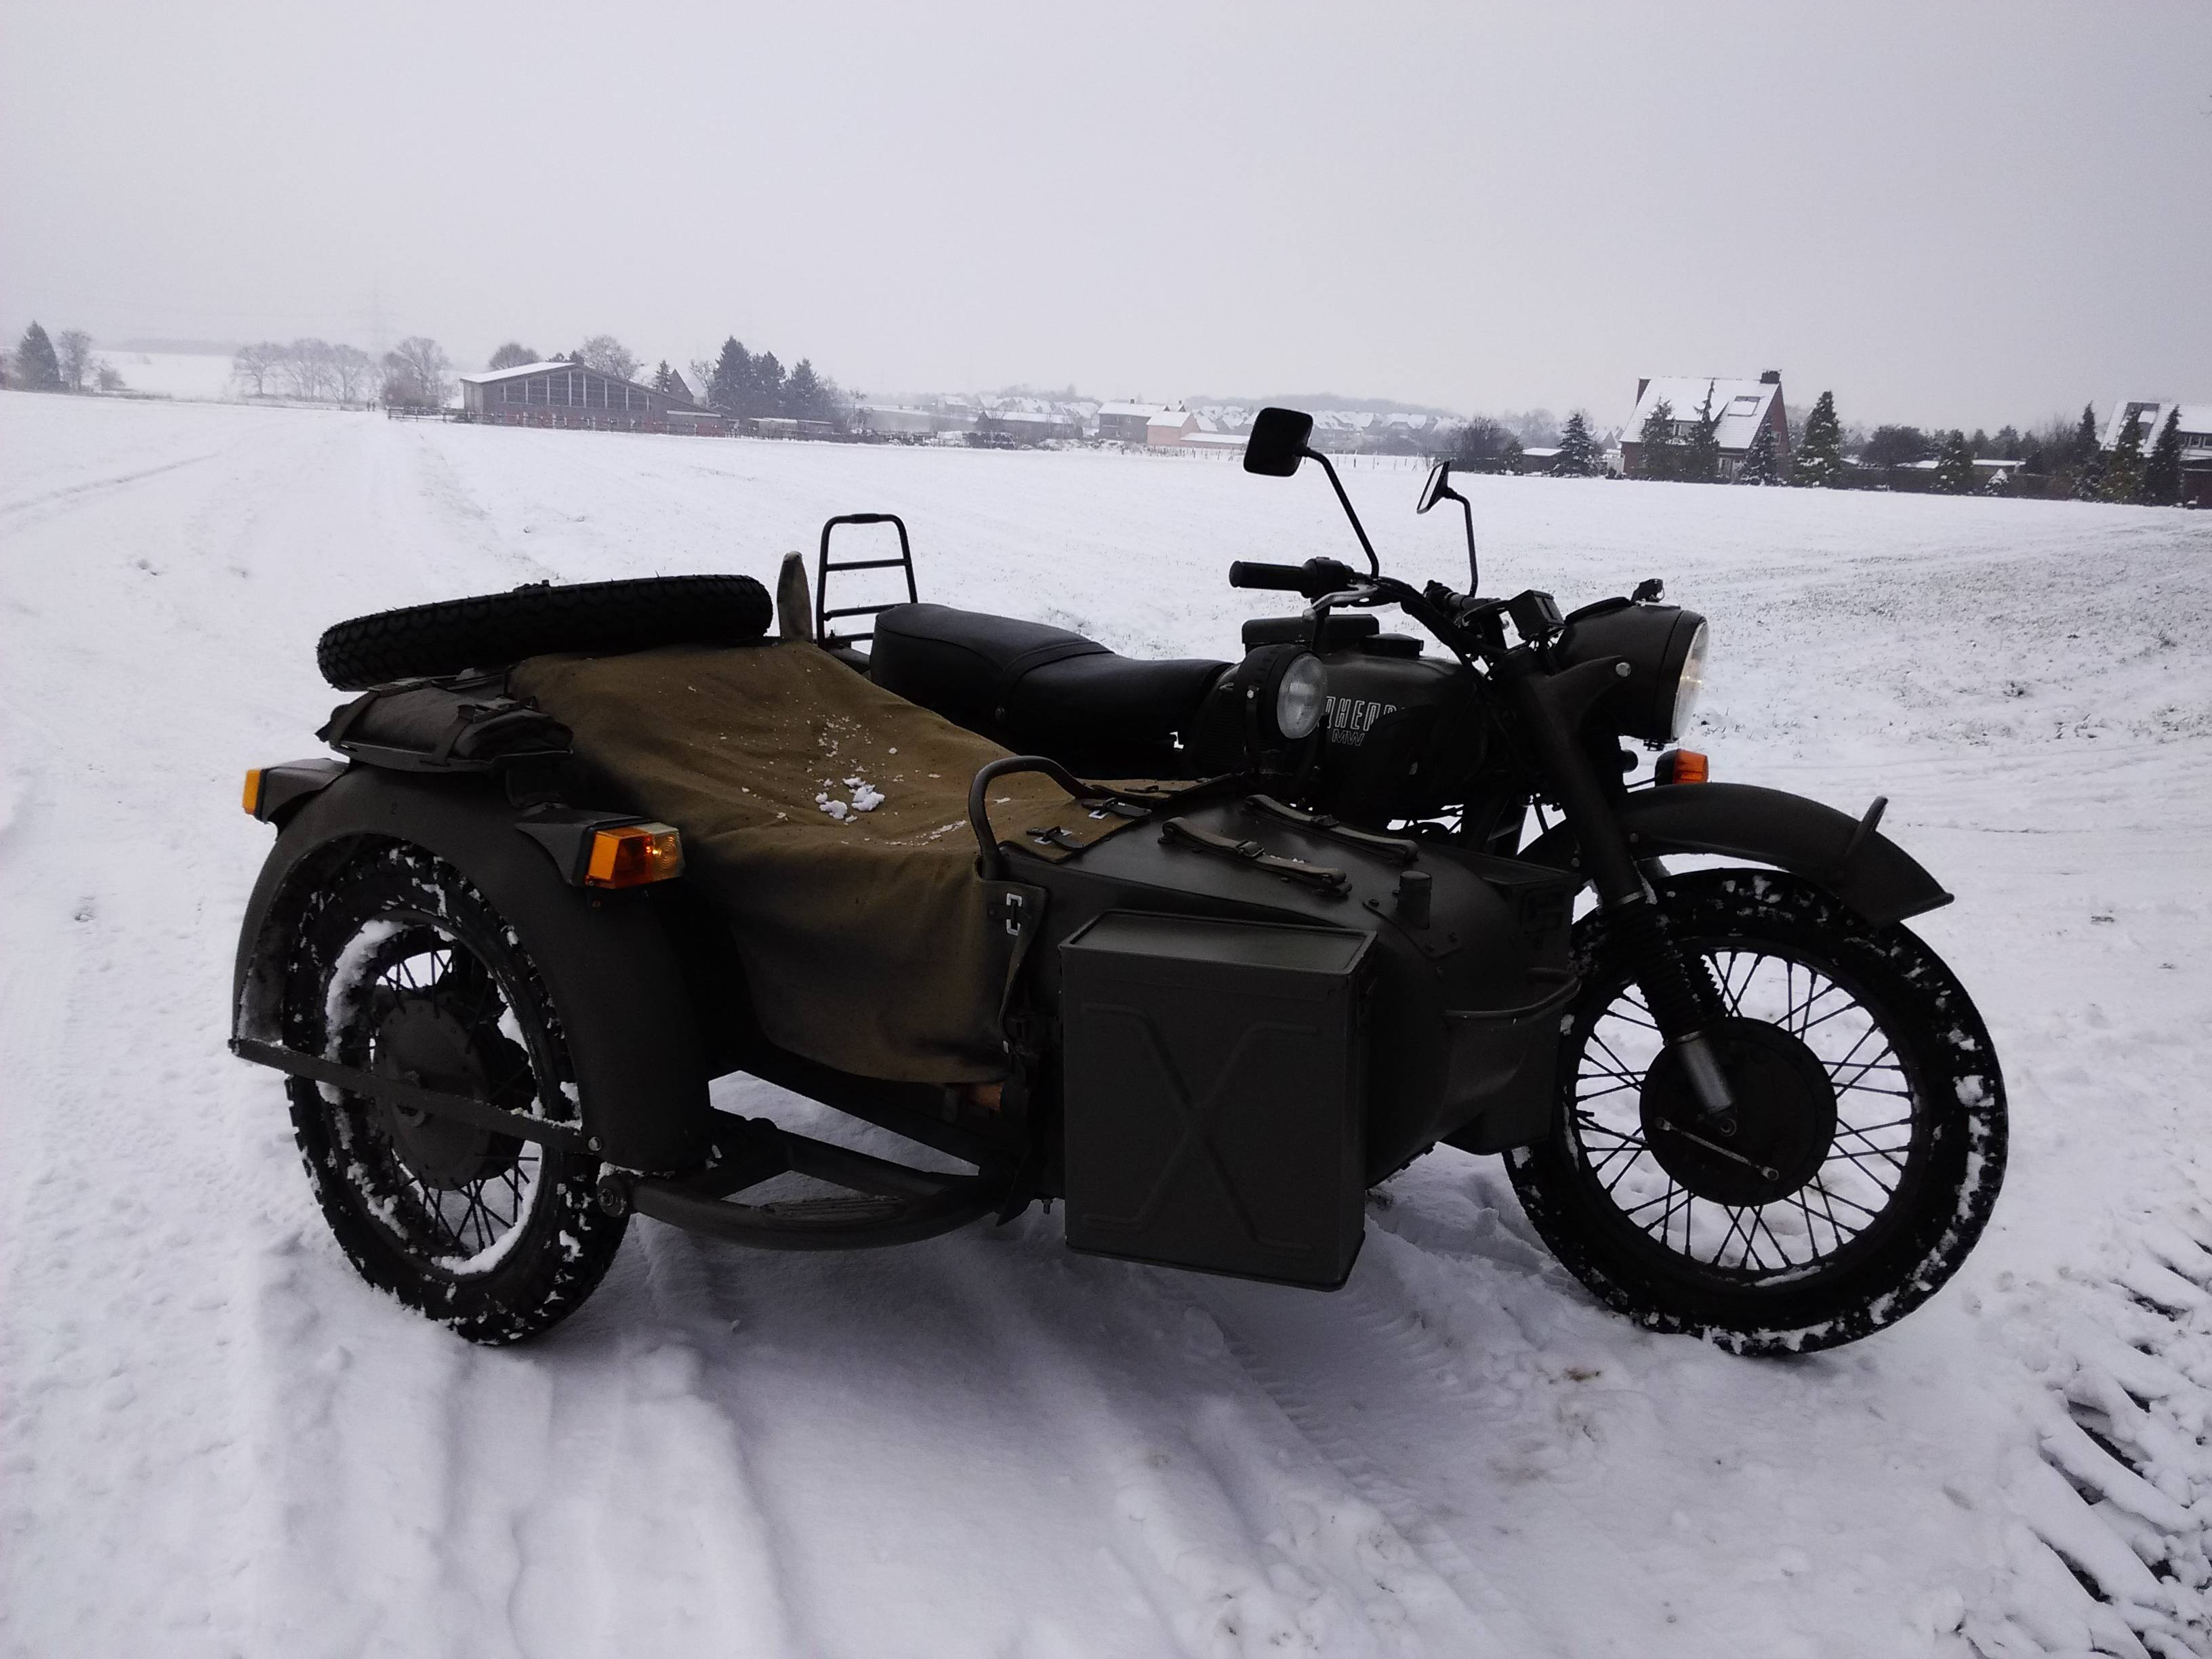 Ural M 66 with sidecar 1974 images #127376